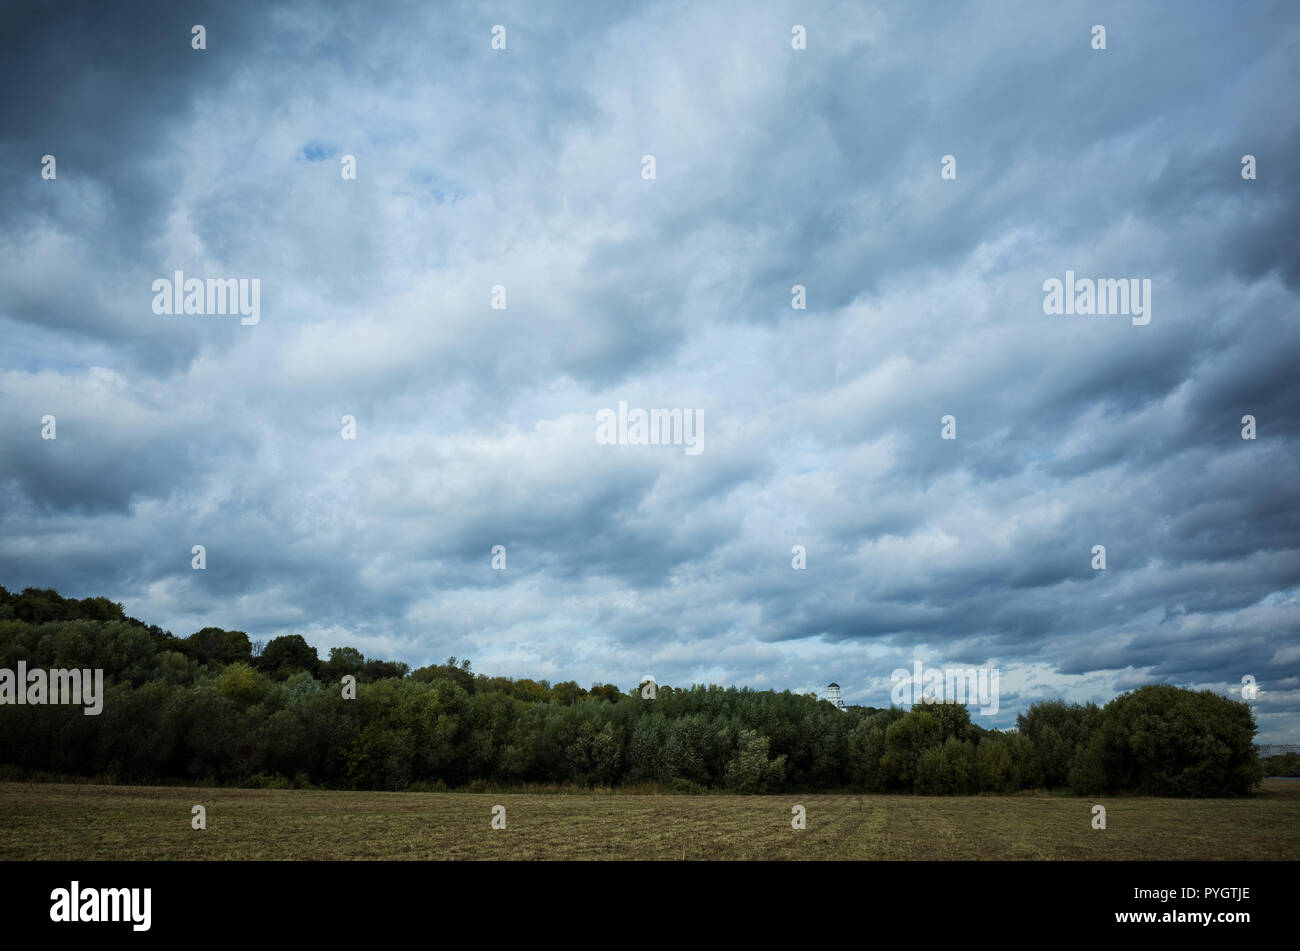 Autumnal fall landscape, park with trees, field, sky with nice m - Stock Image